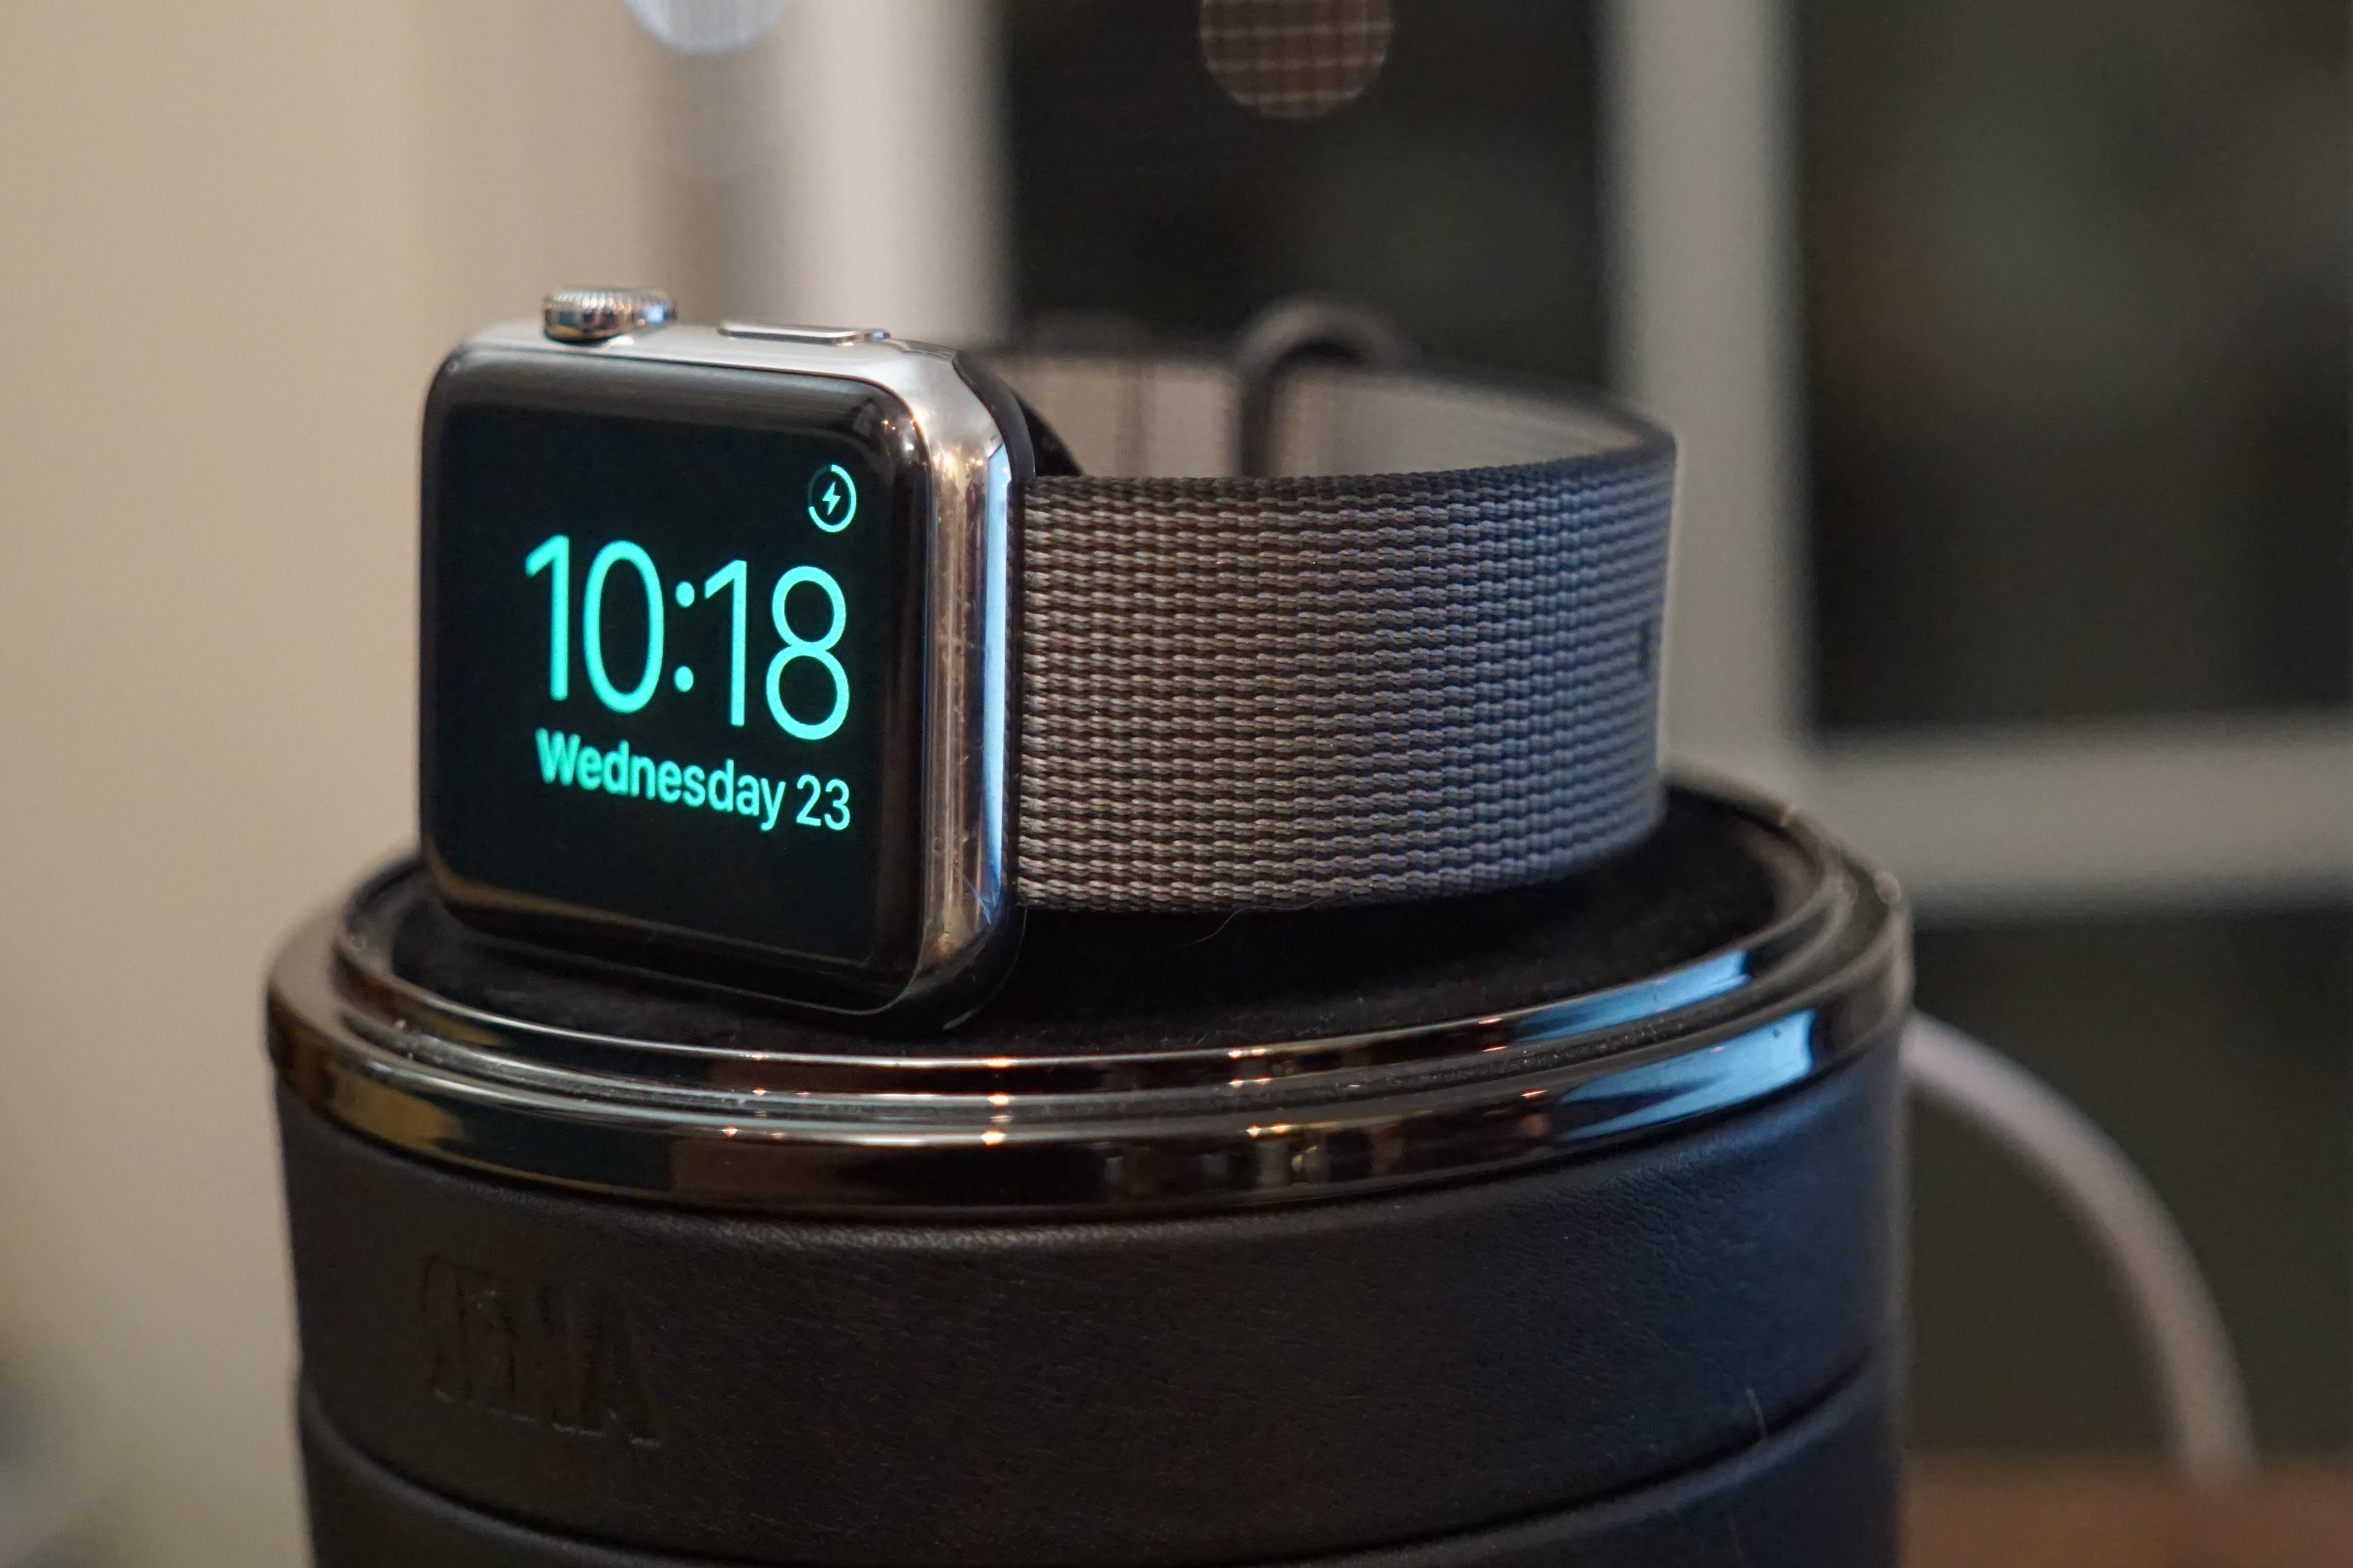 Nylon Watch Band charging